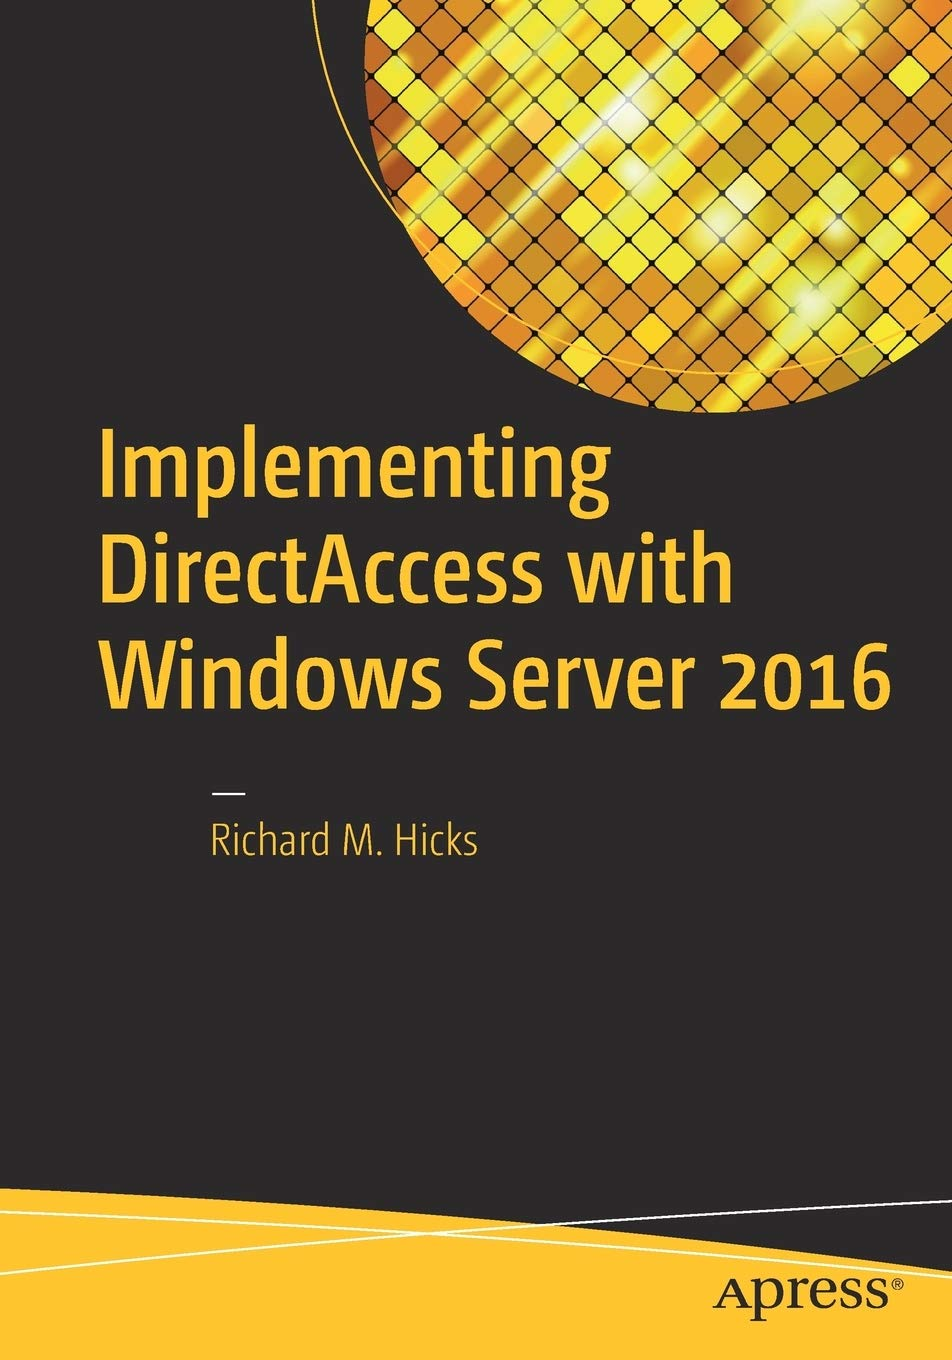 Image OfImplementing DirectAccess With Windows Server 2016